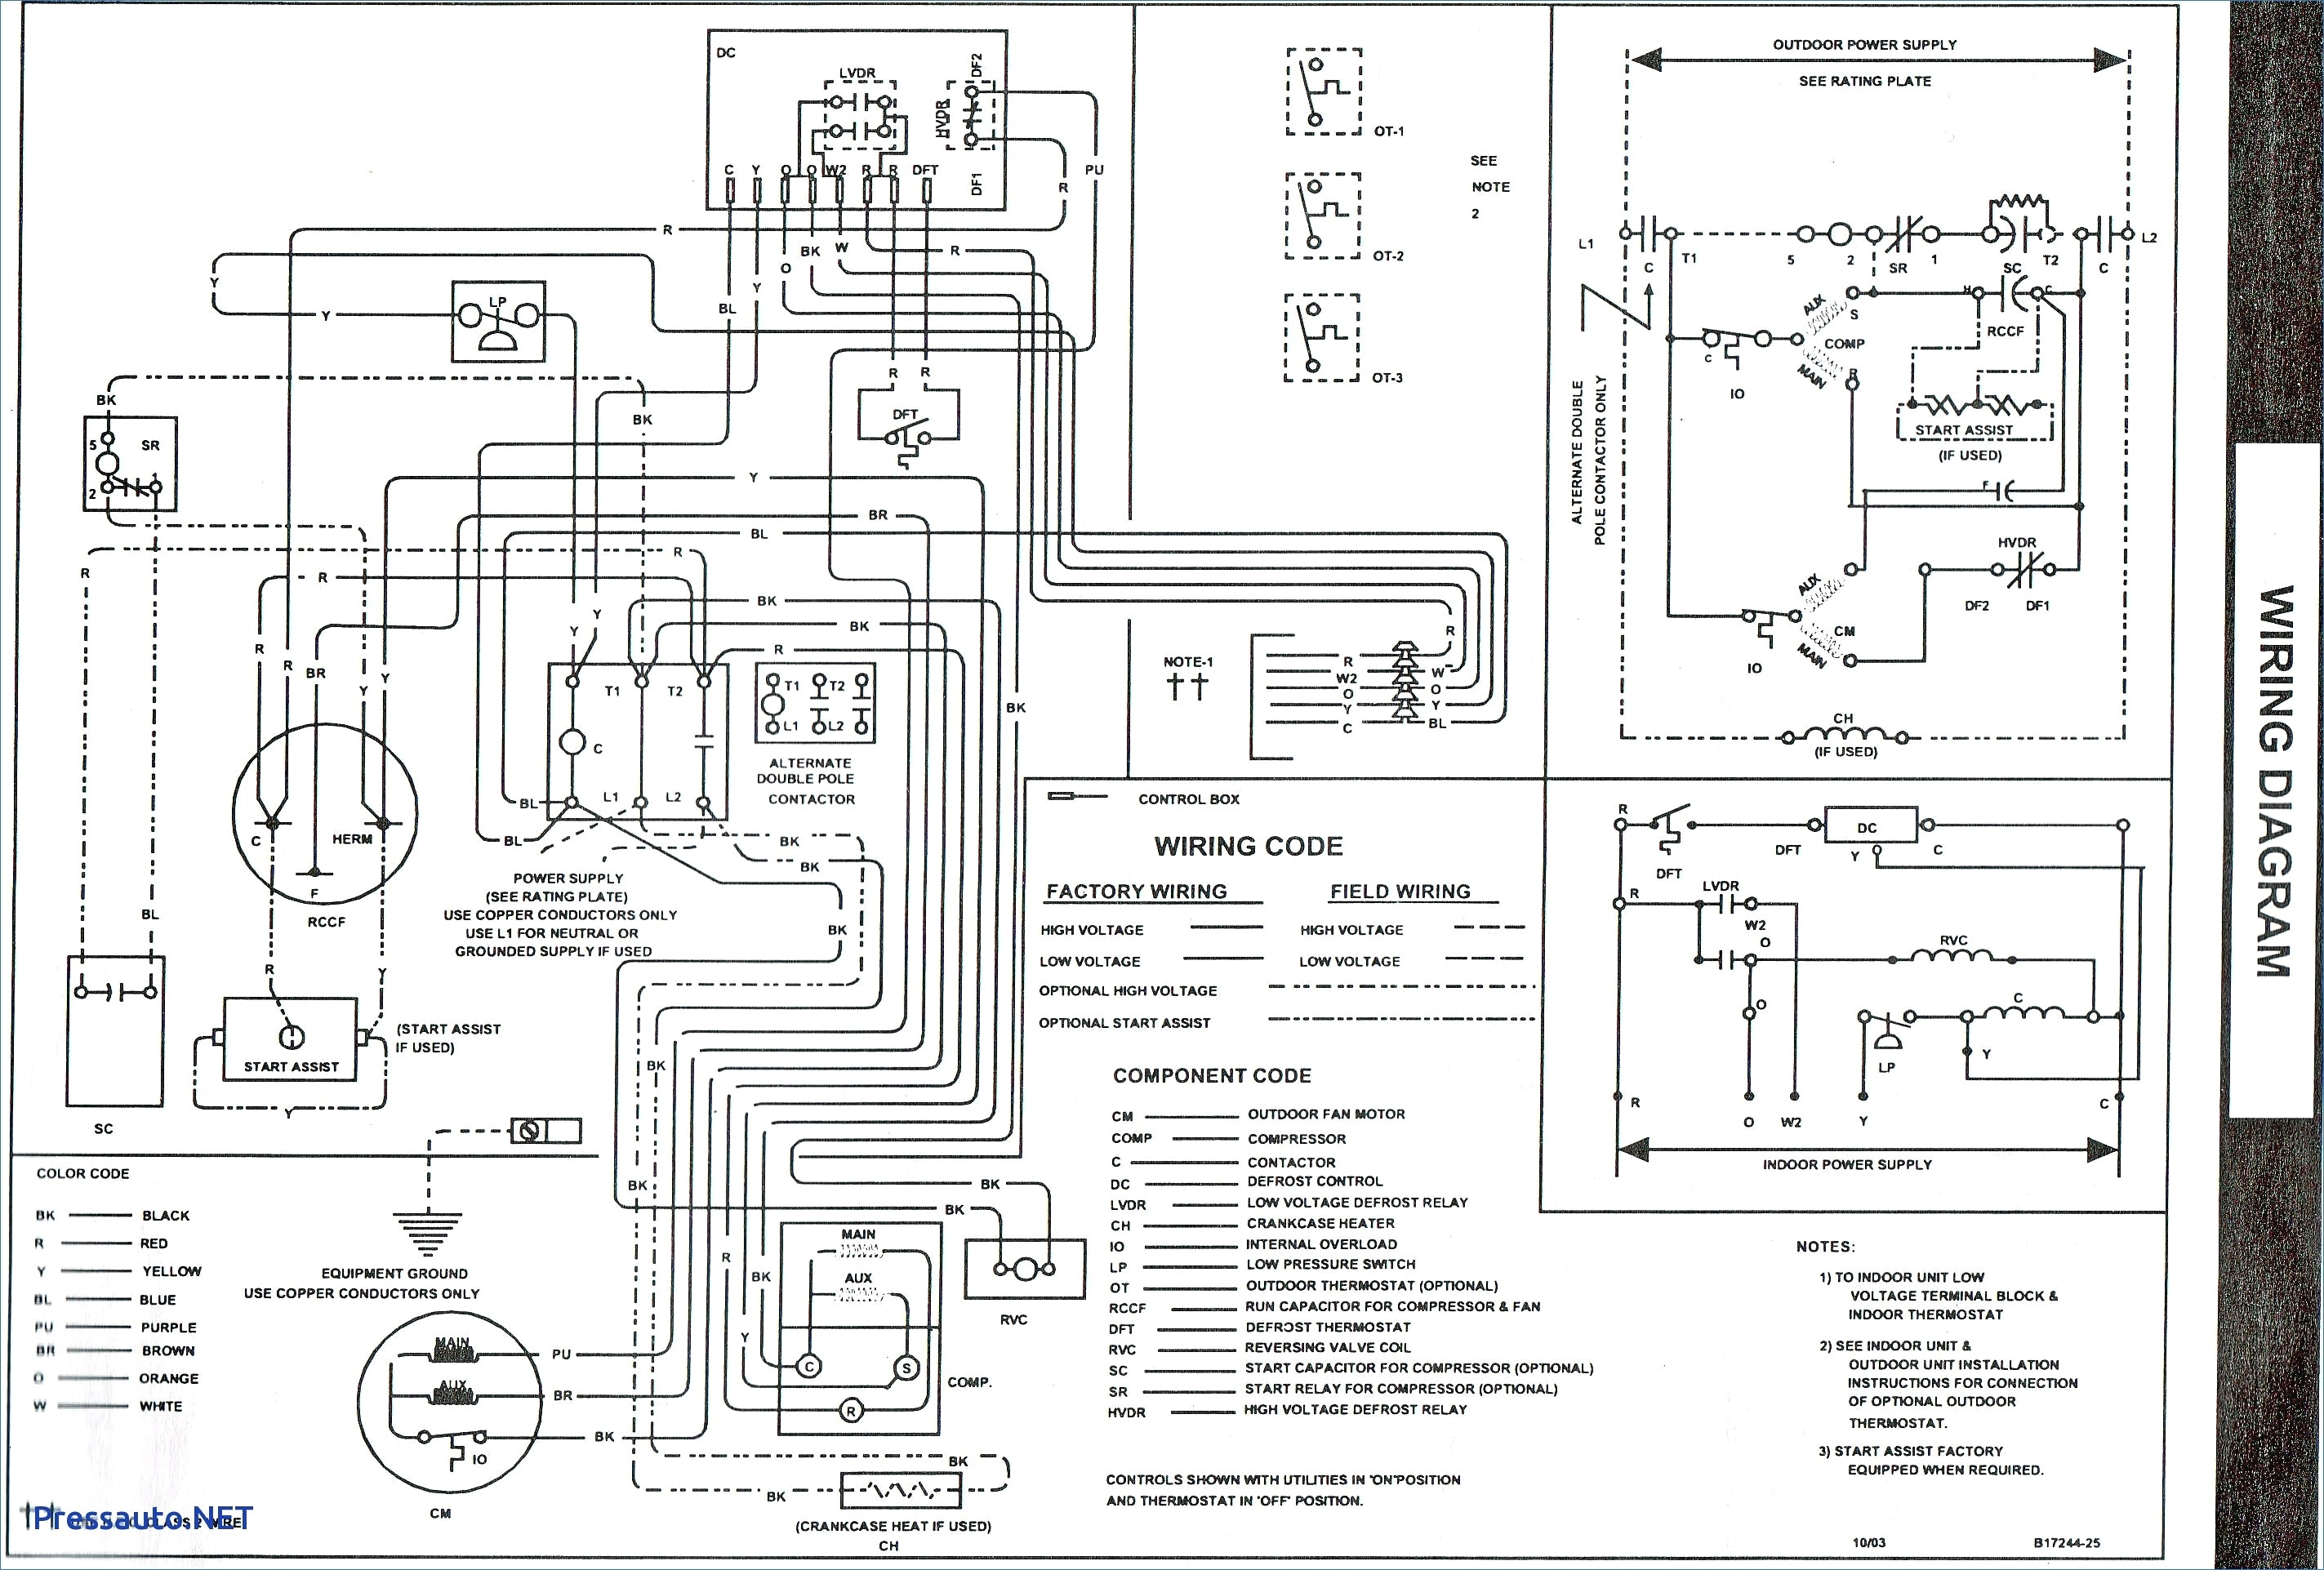 Goodman Defrost Board Wiring Diagram